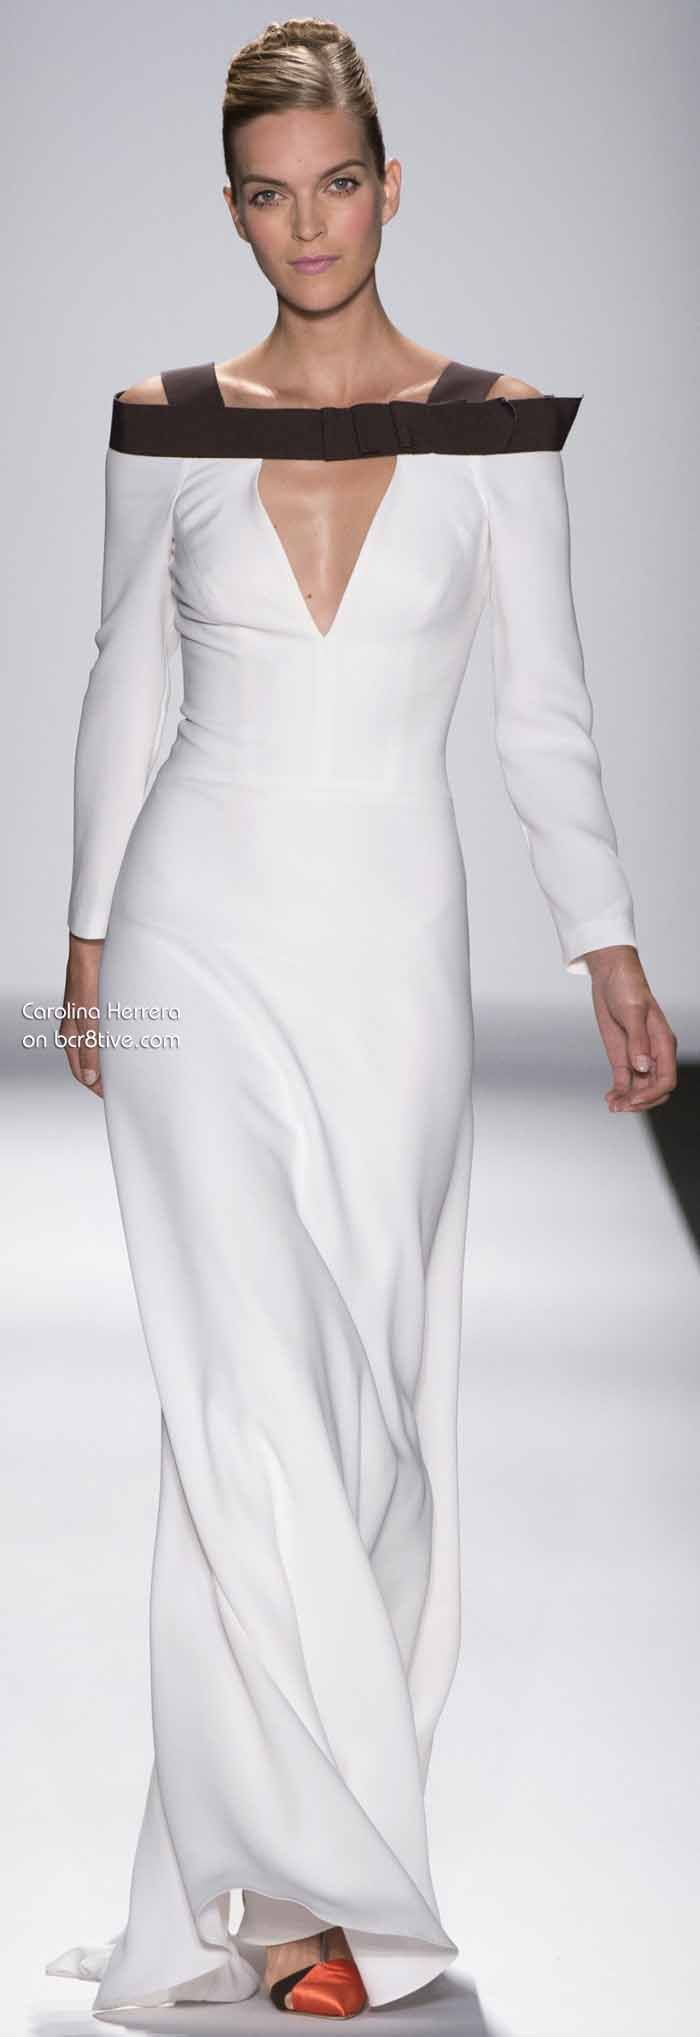 Stunning  Carolina Herrera  this is a statement gown..you will woo the crowd with this amazing  statement piece..just fab  .bcr8tive